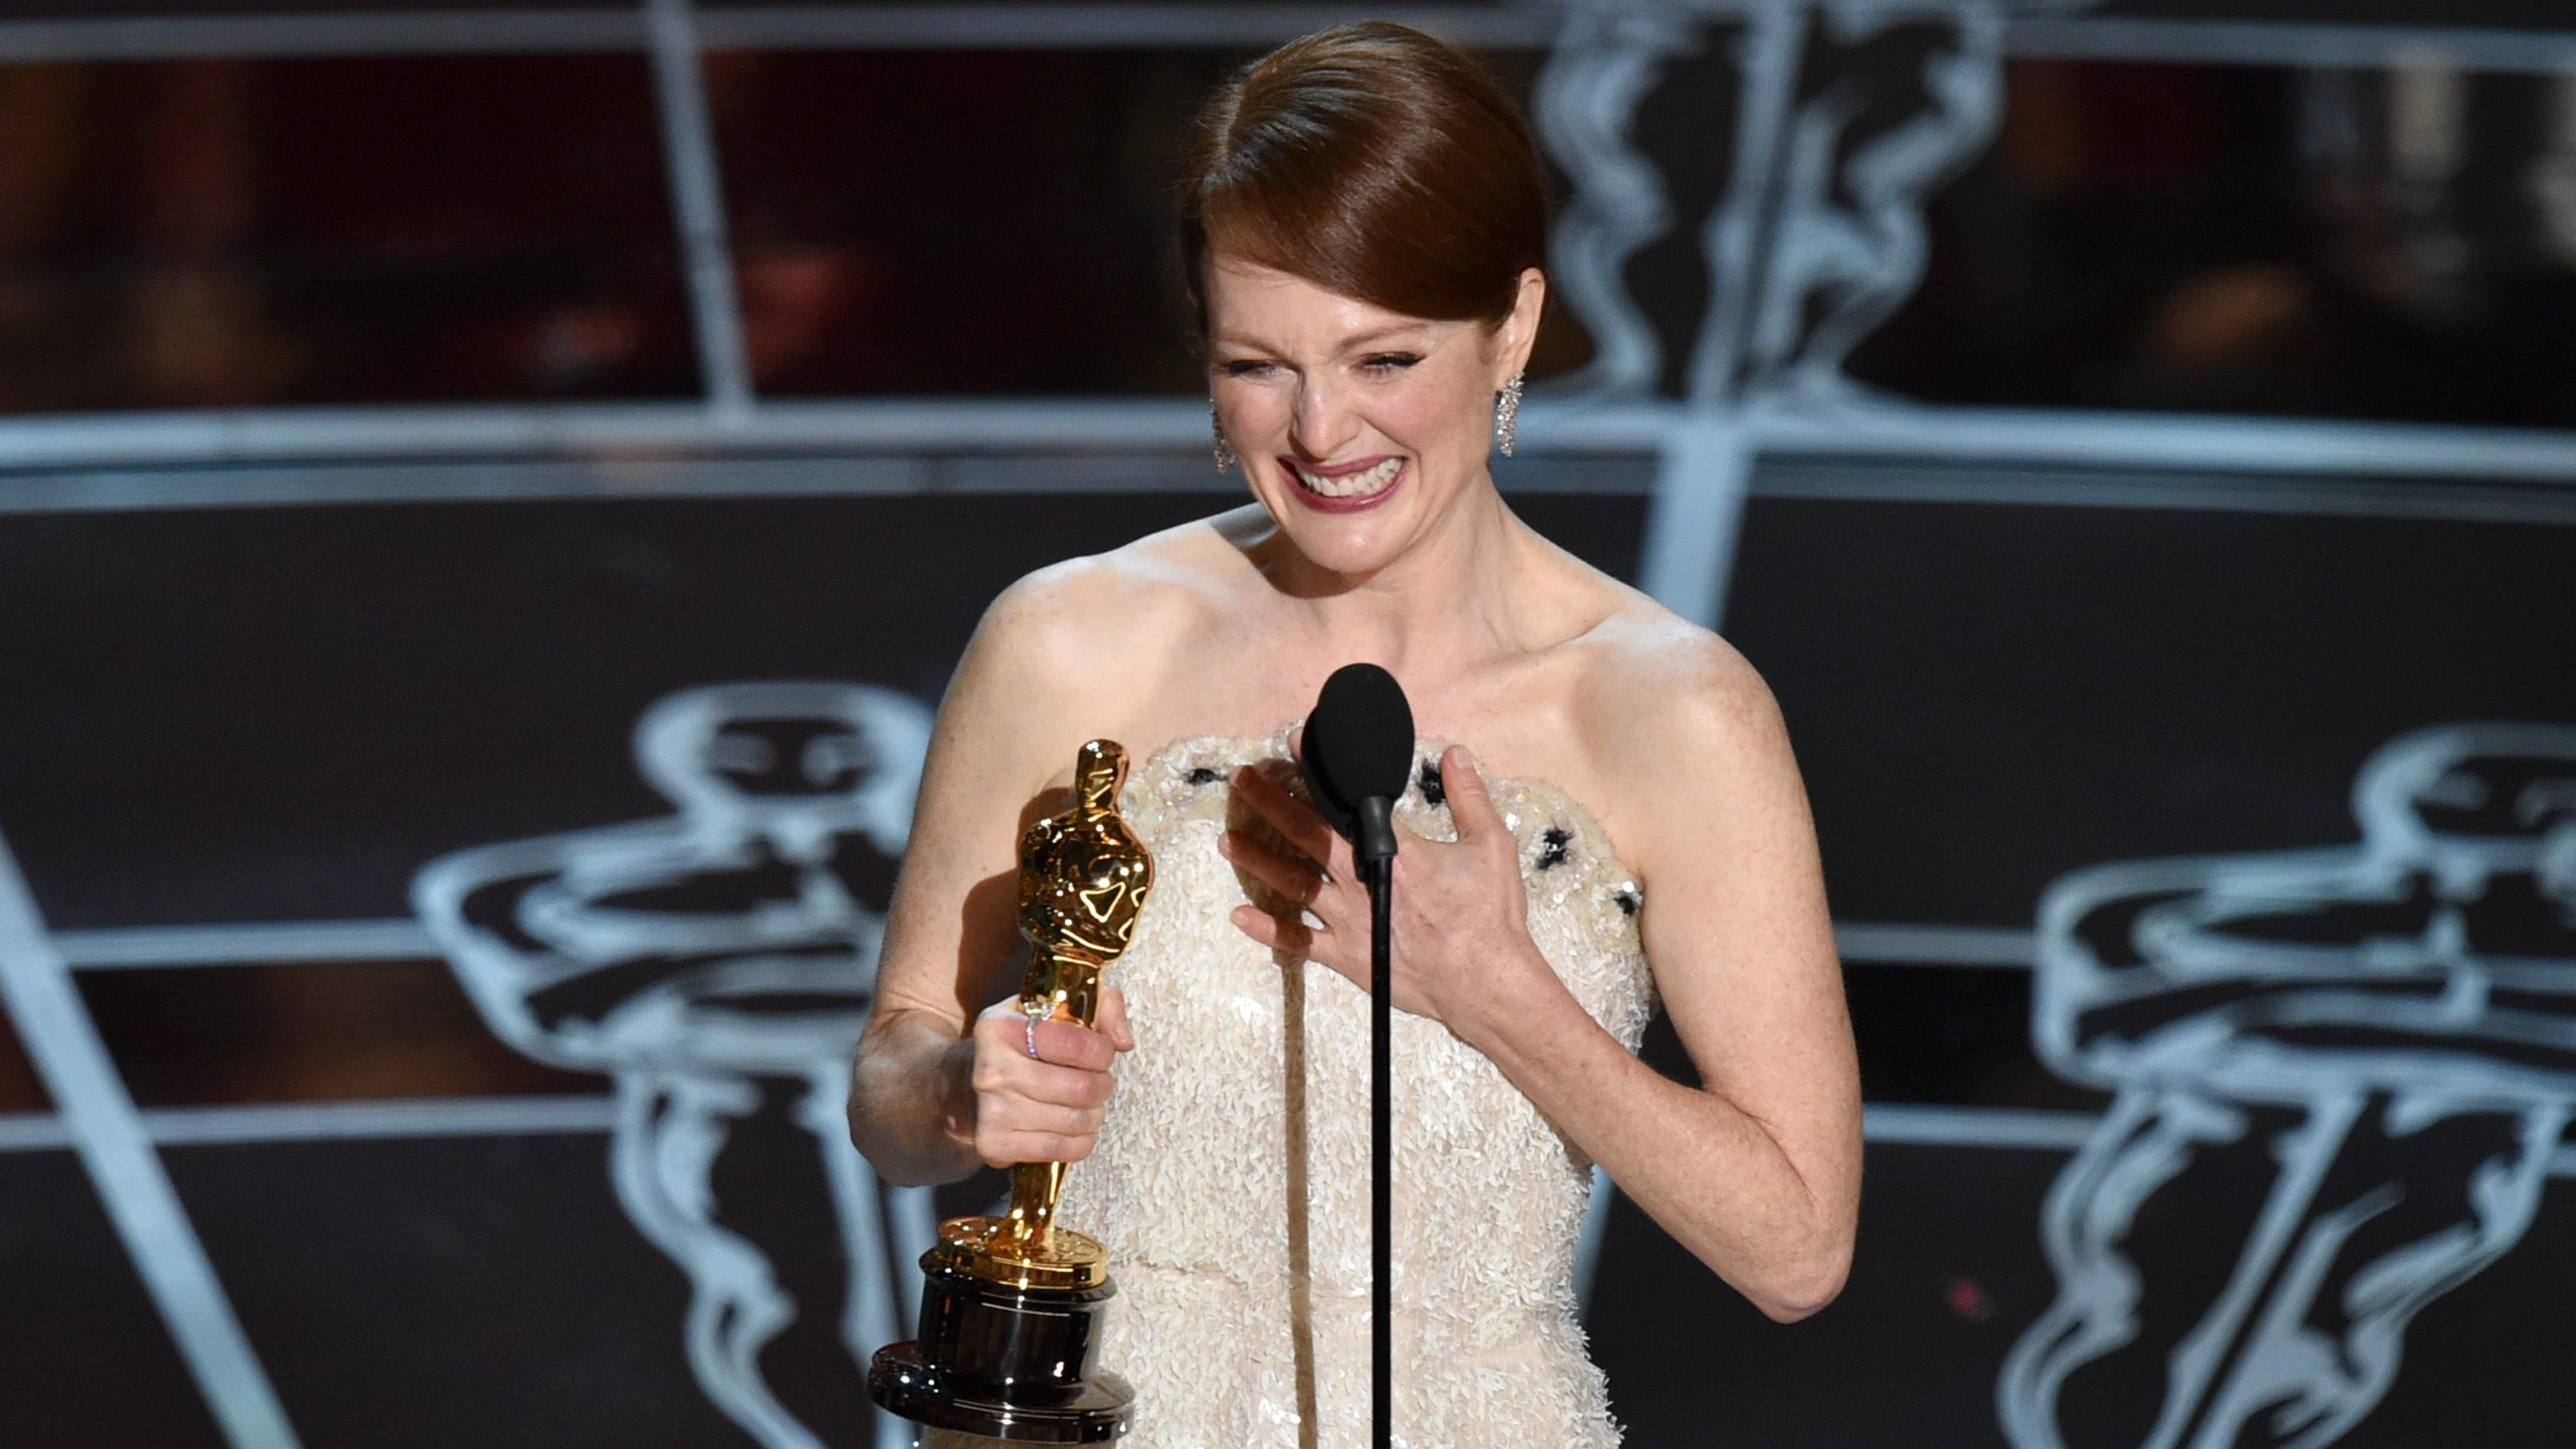 """Julianne Moore accepts the award for best actress in a leading role for """"Still Alice"""" at the Oscars on Sunday, Feb. 22, 2015, at the Dolby Theatre in Los Angeles. (Photo by John Shearer/Invision/AP)"""